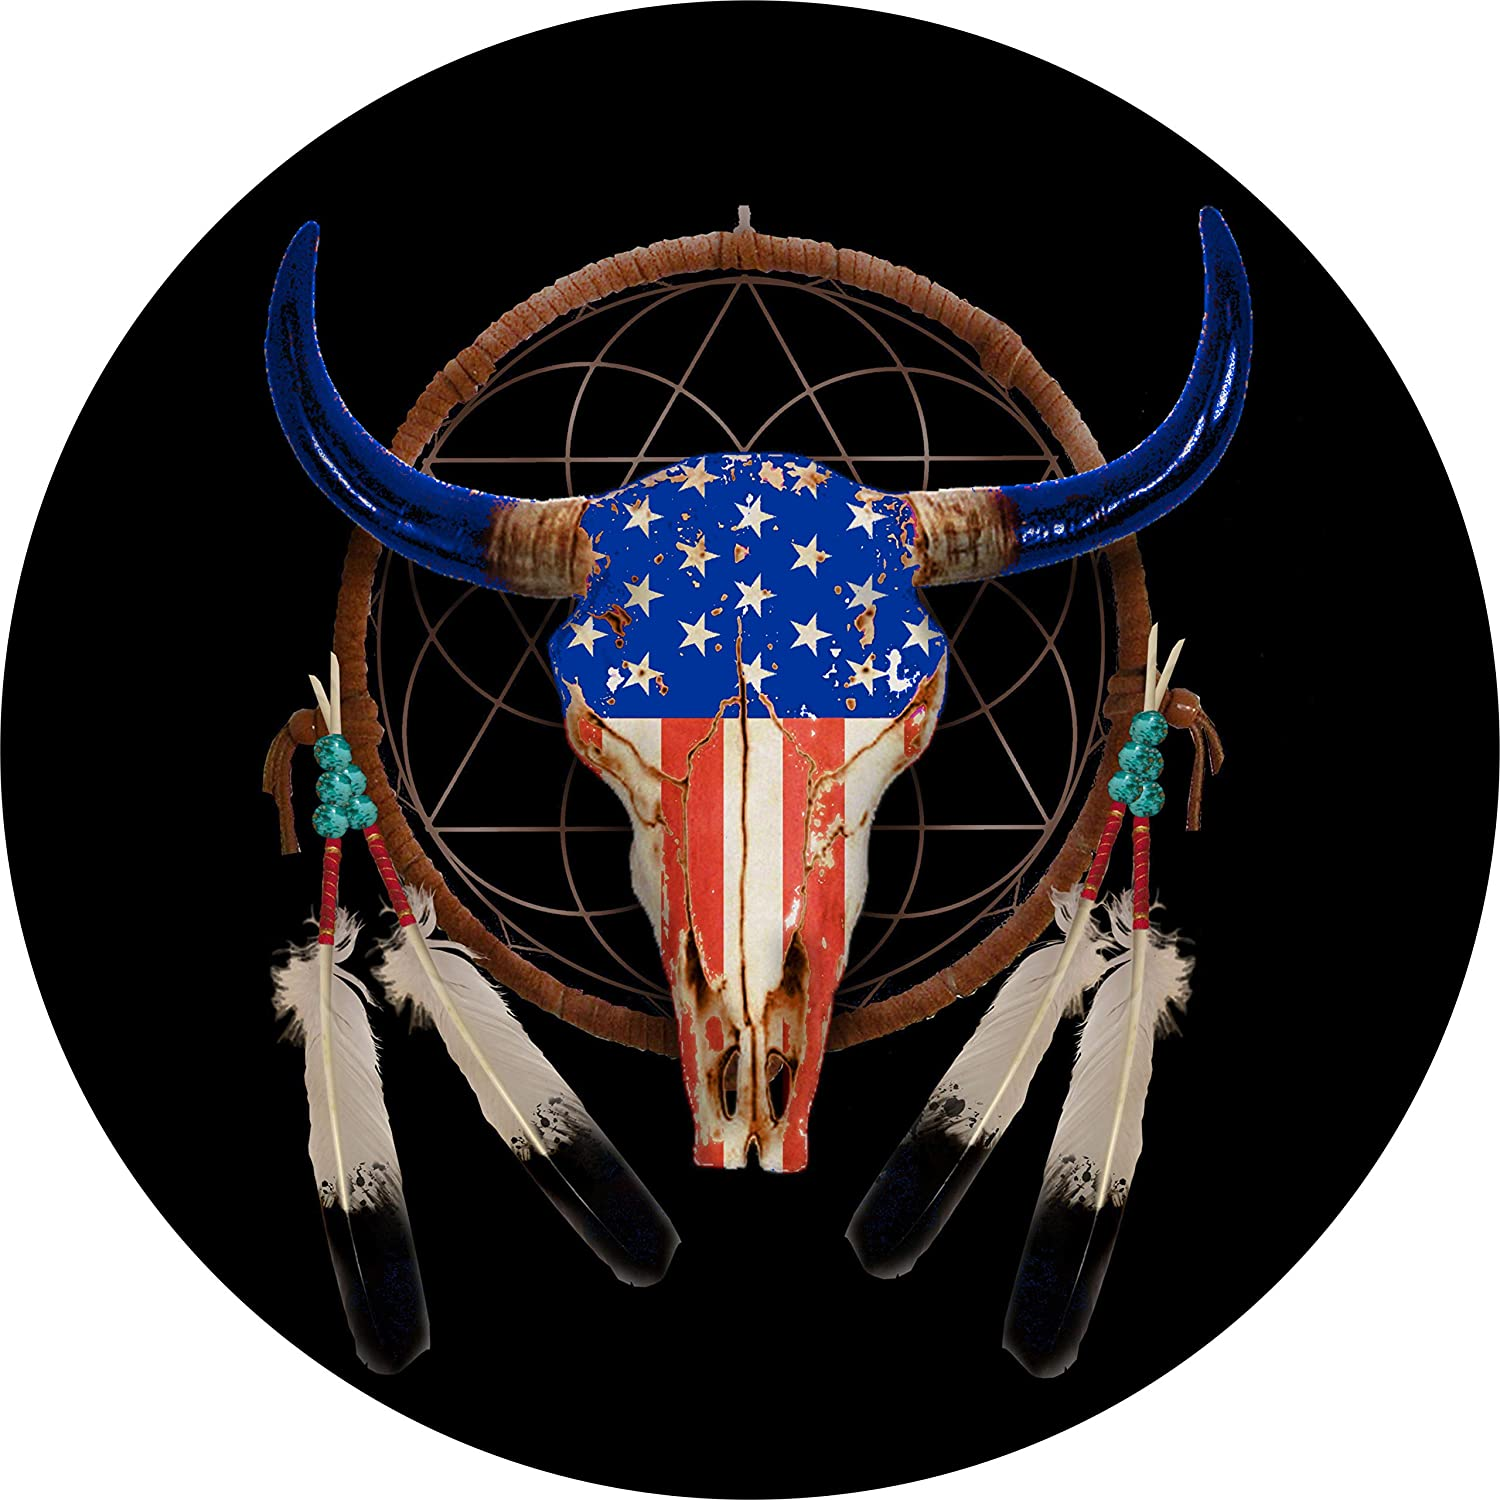 Max 43% OFF Dreamcatcher Americana Cow Skull and US Tire Cover Spare Flag S Ranking TOP17